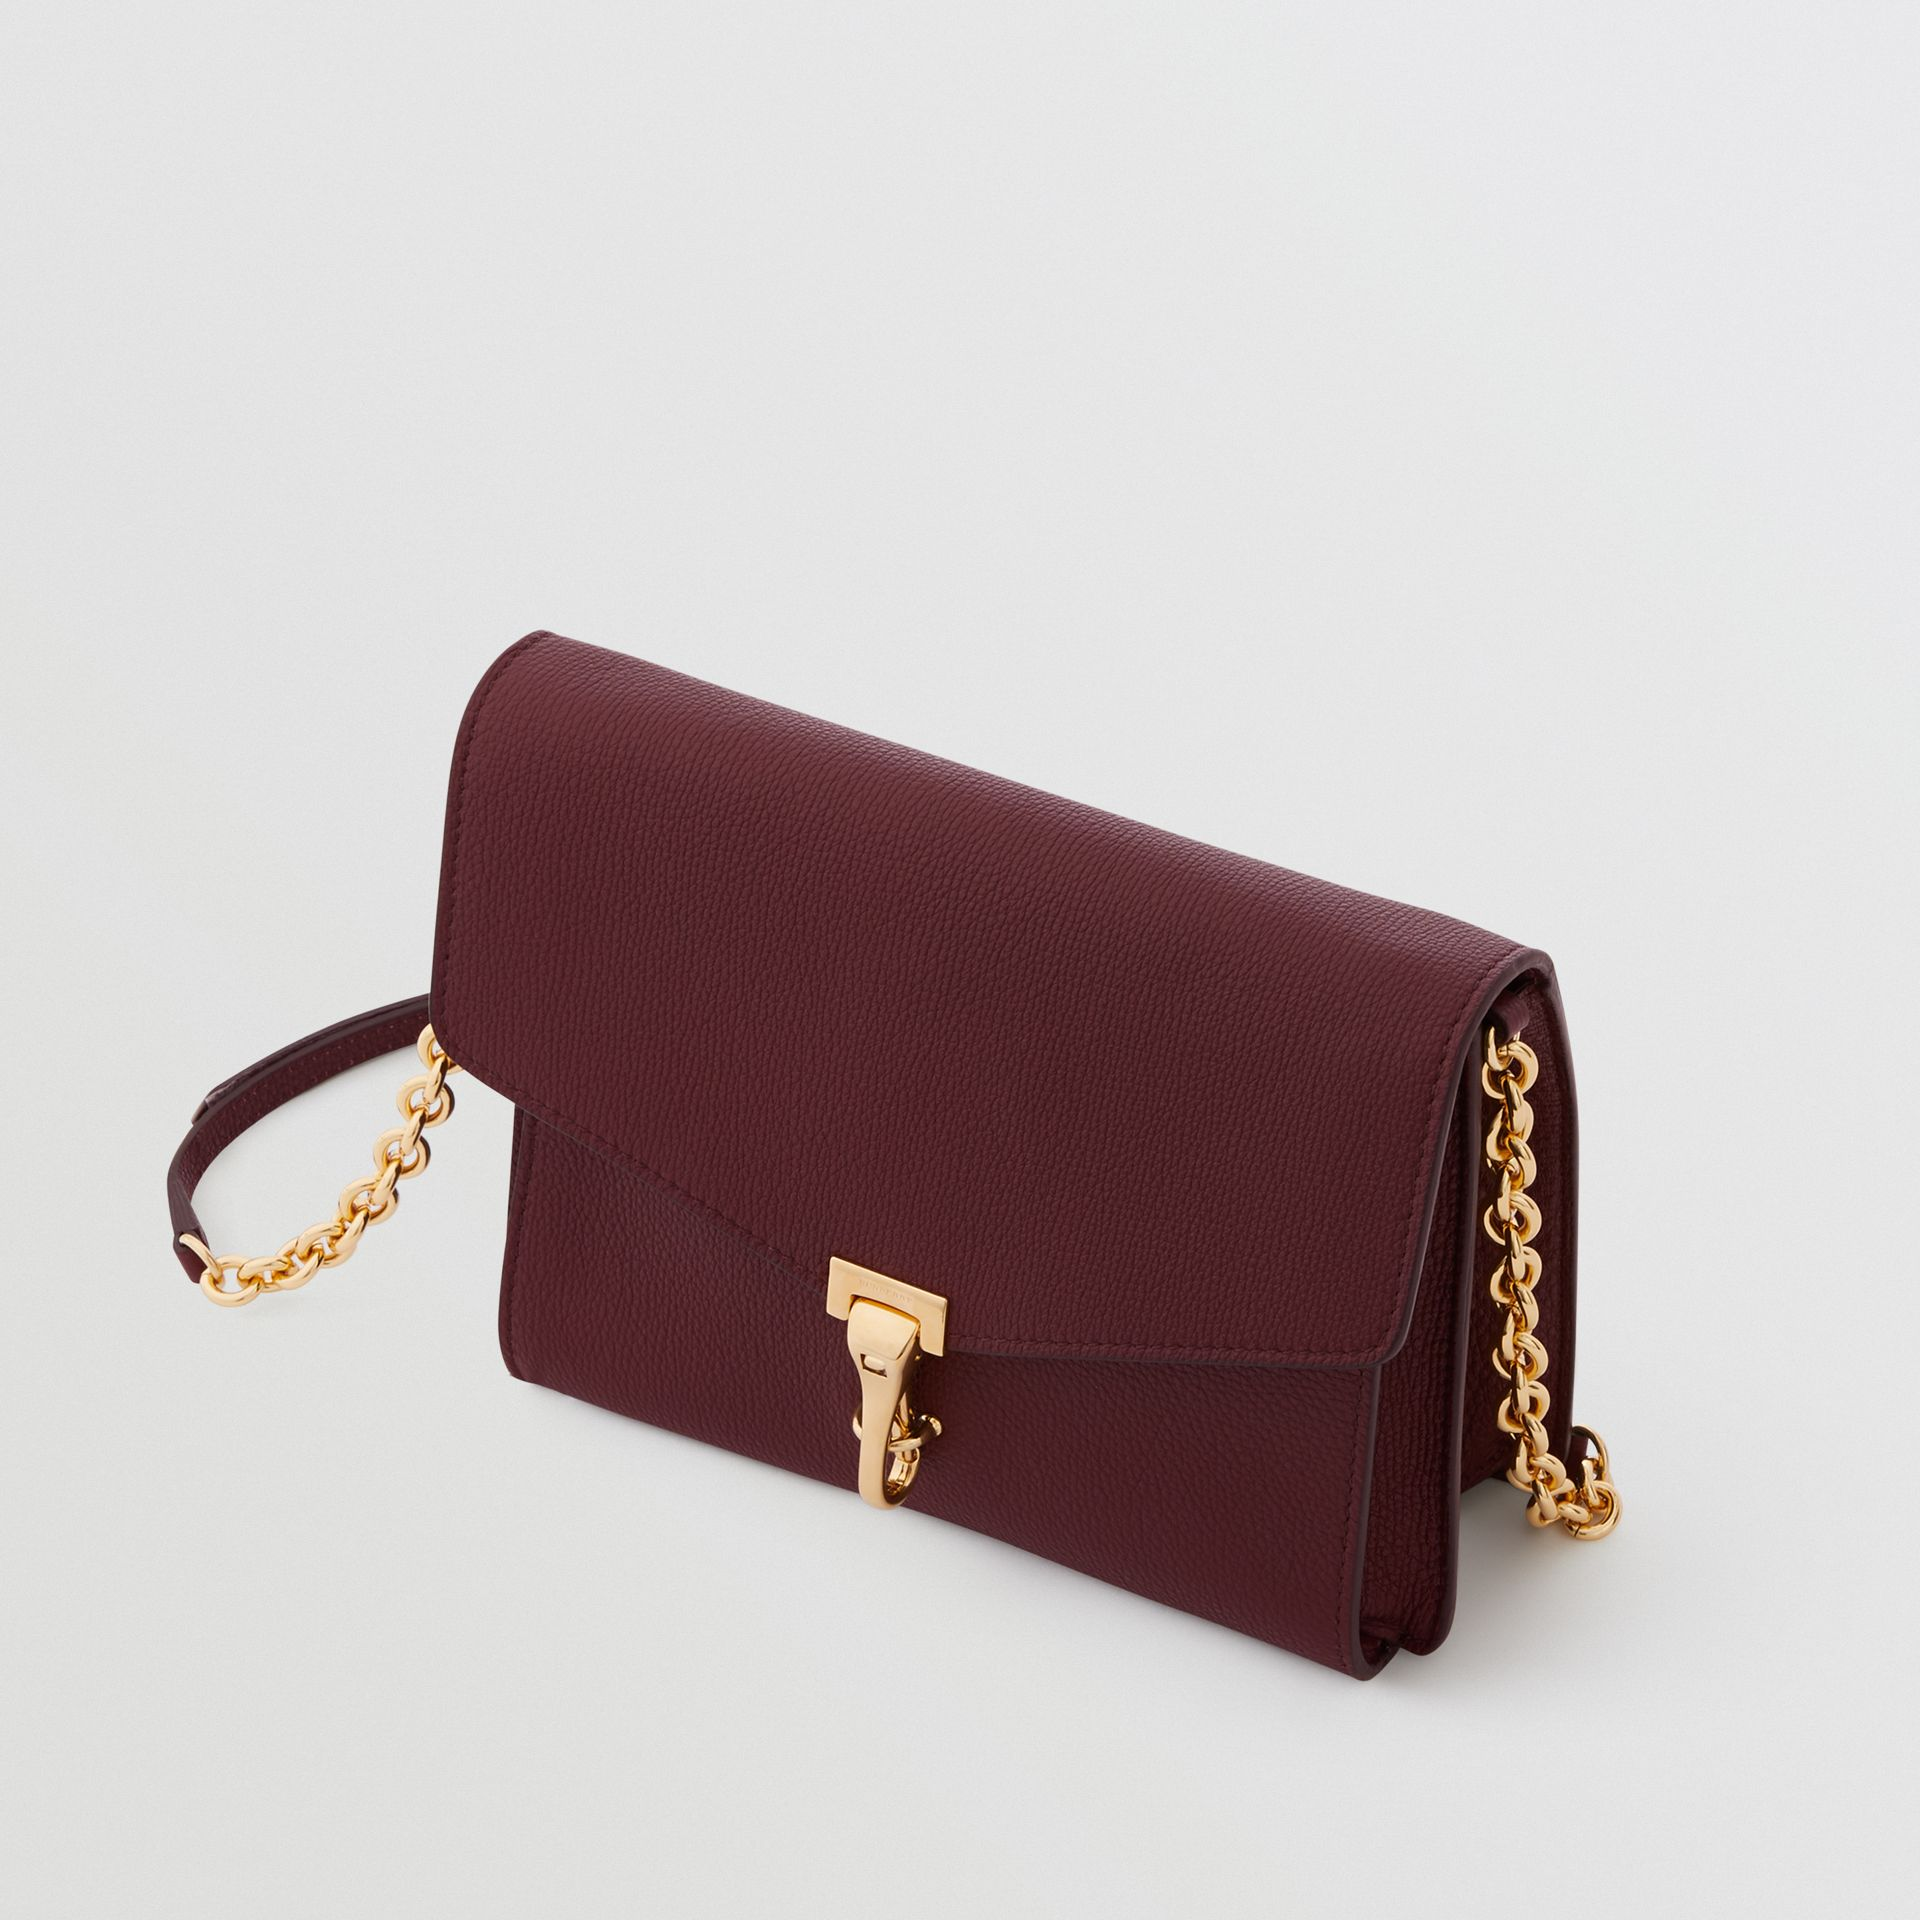 Small Leather Crossbody Bag in Mahogany Red - Women | Burberry United Kingdom - gallery image 4